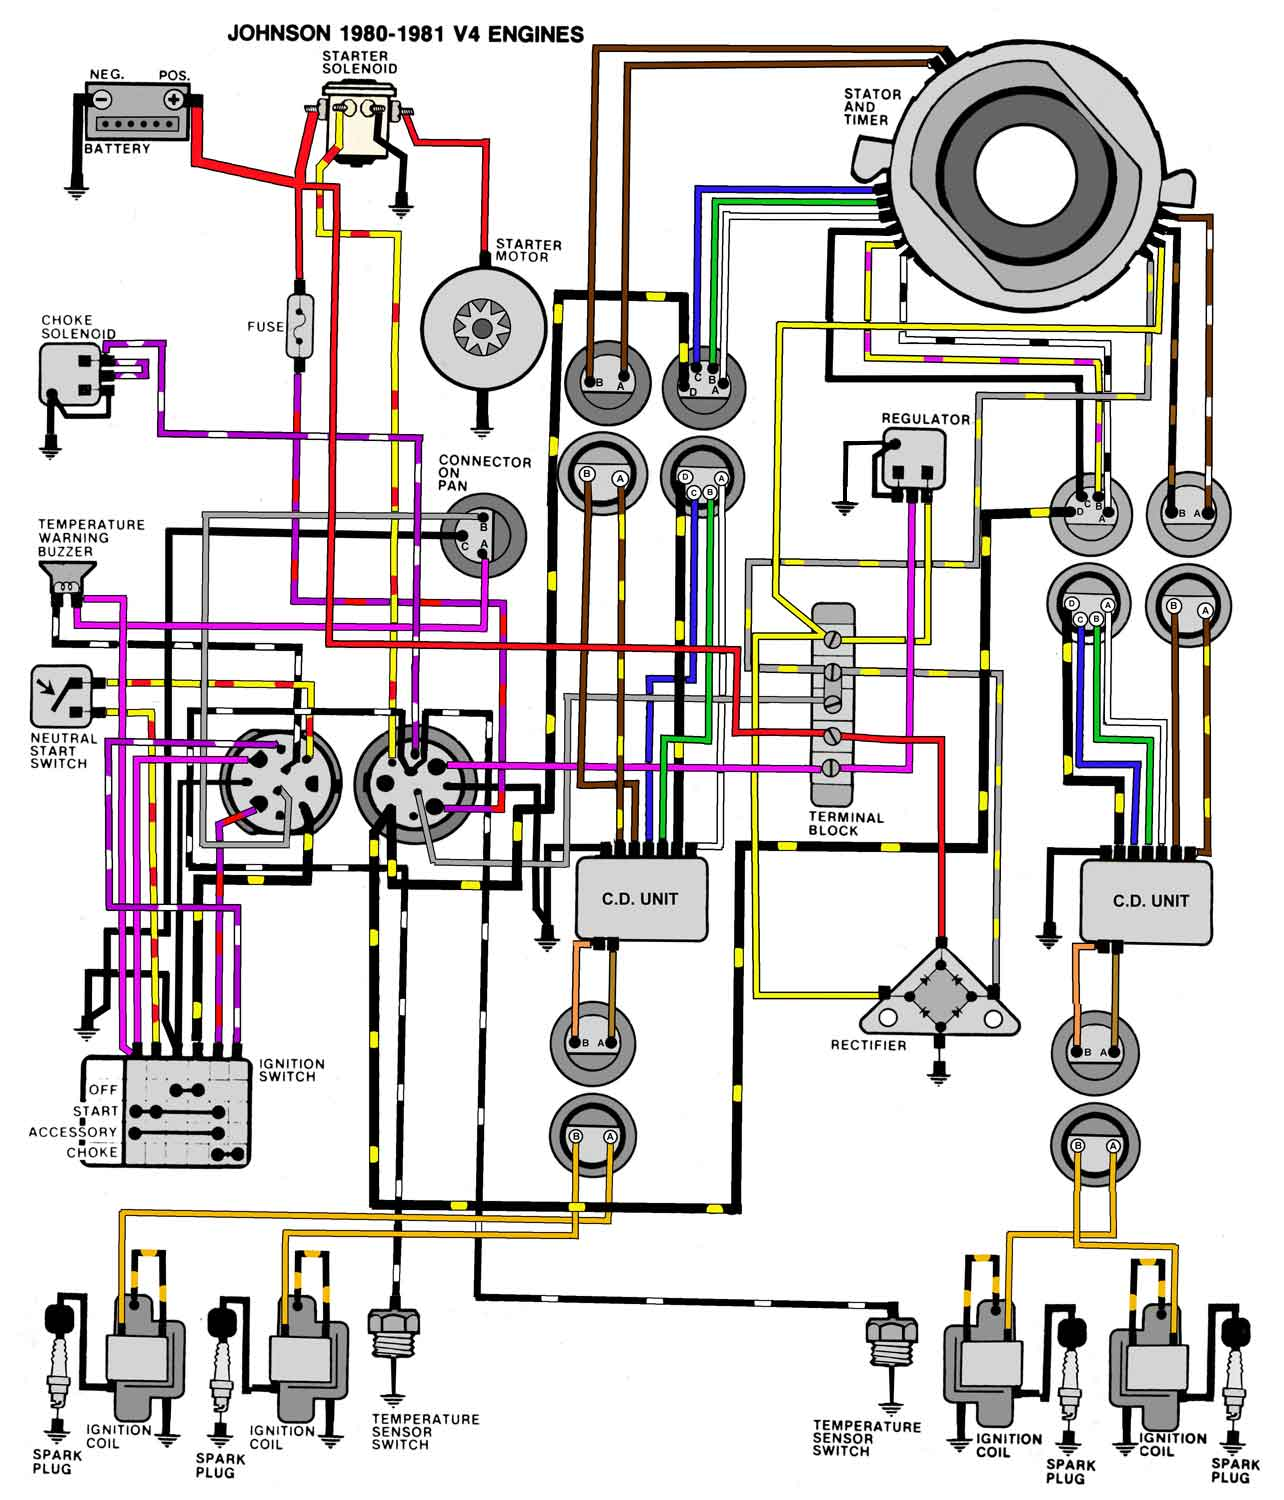 75 hp johnson outboard wiring diagram